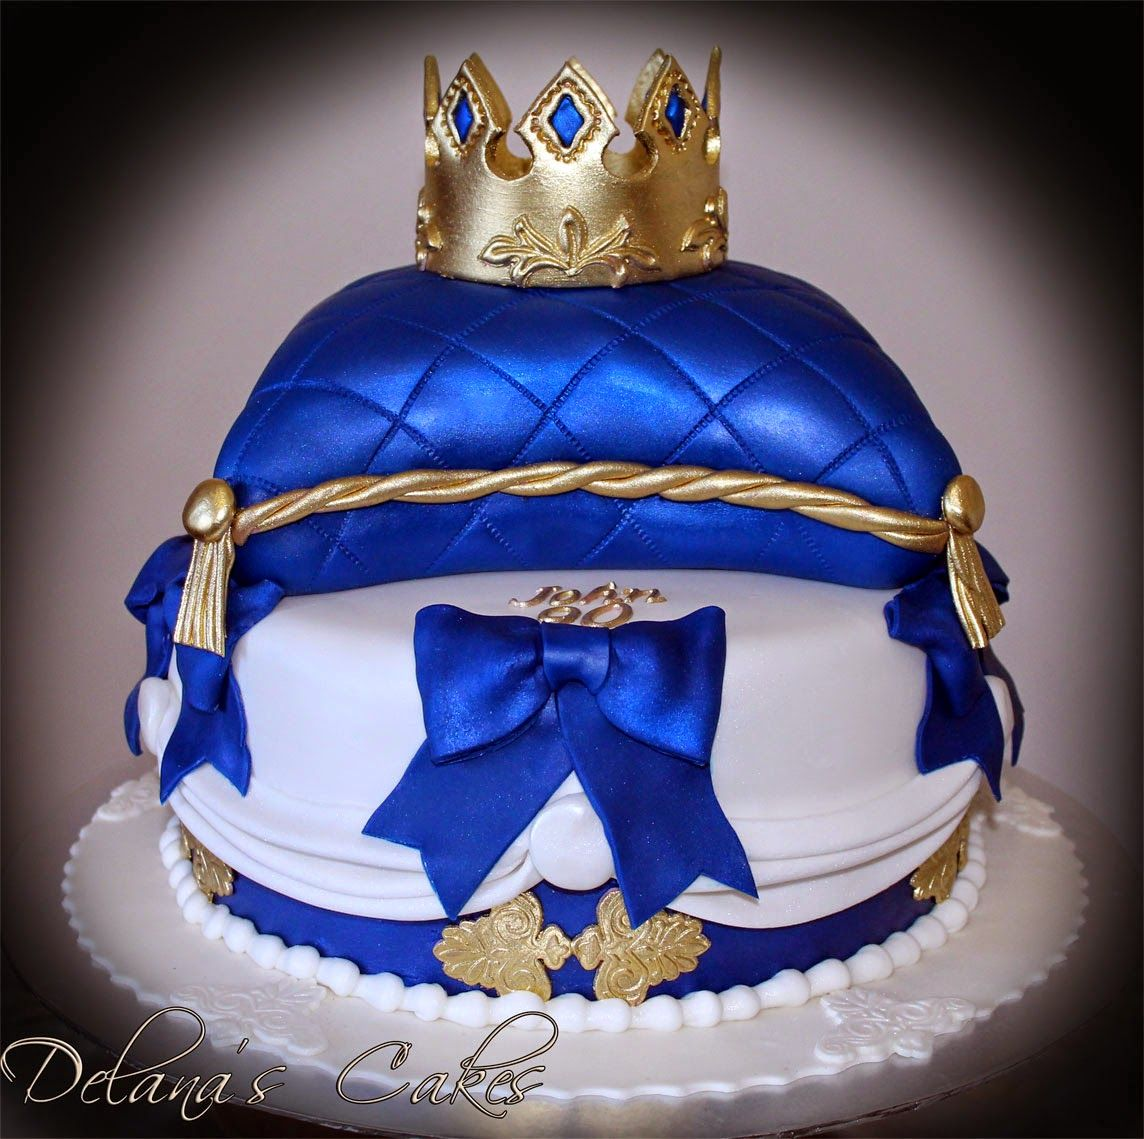 Royal Themed Cake By Delana's Cakes